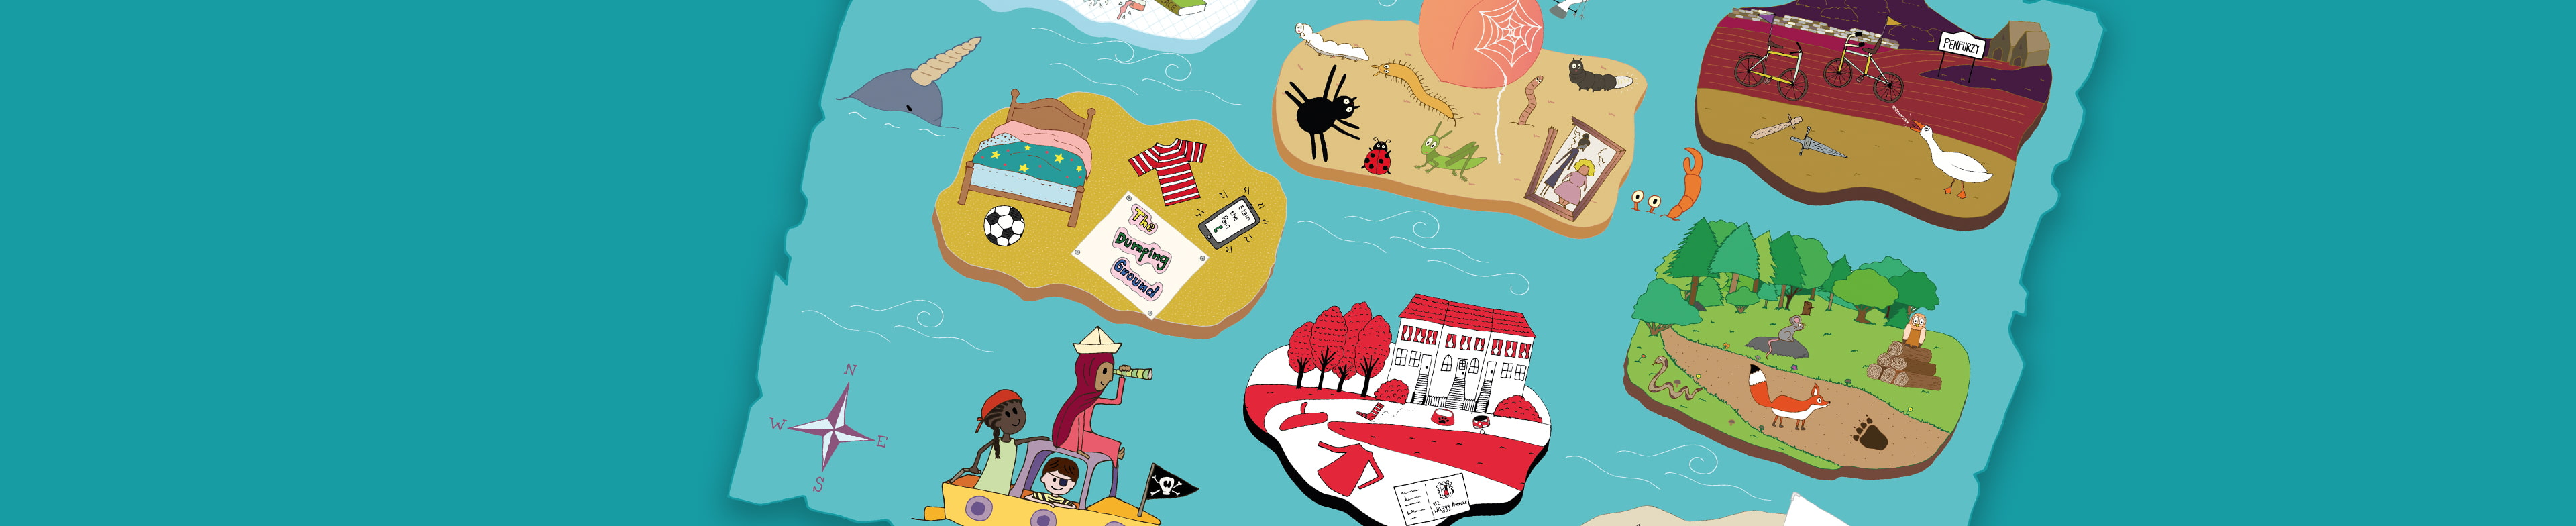 Play our Book Island Challenge to win National Book Tokens.